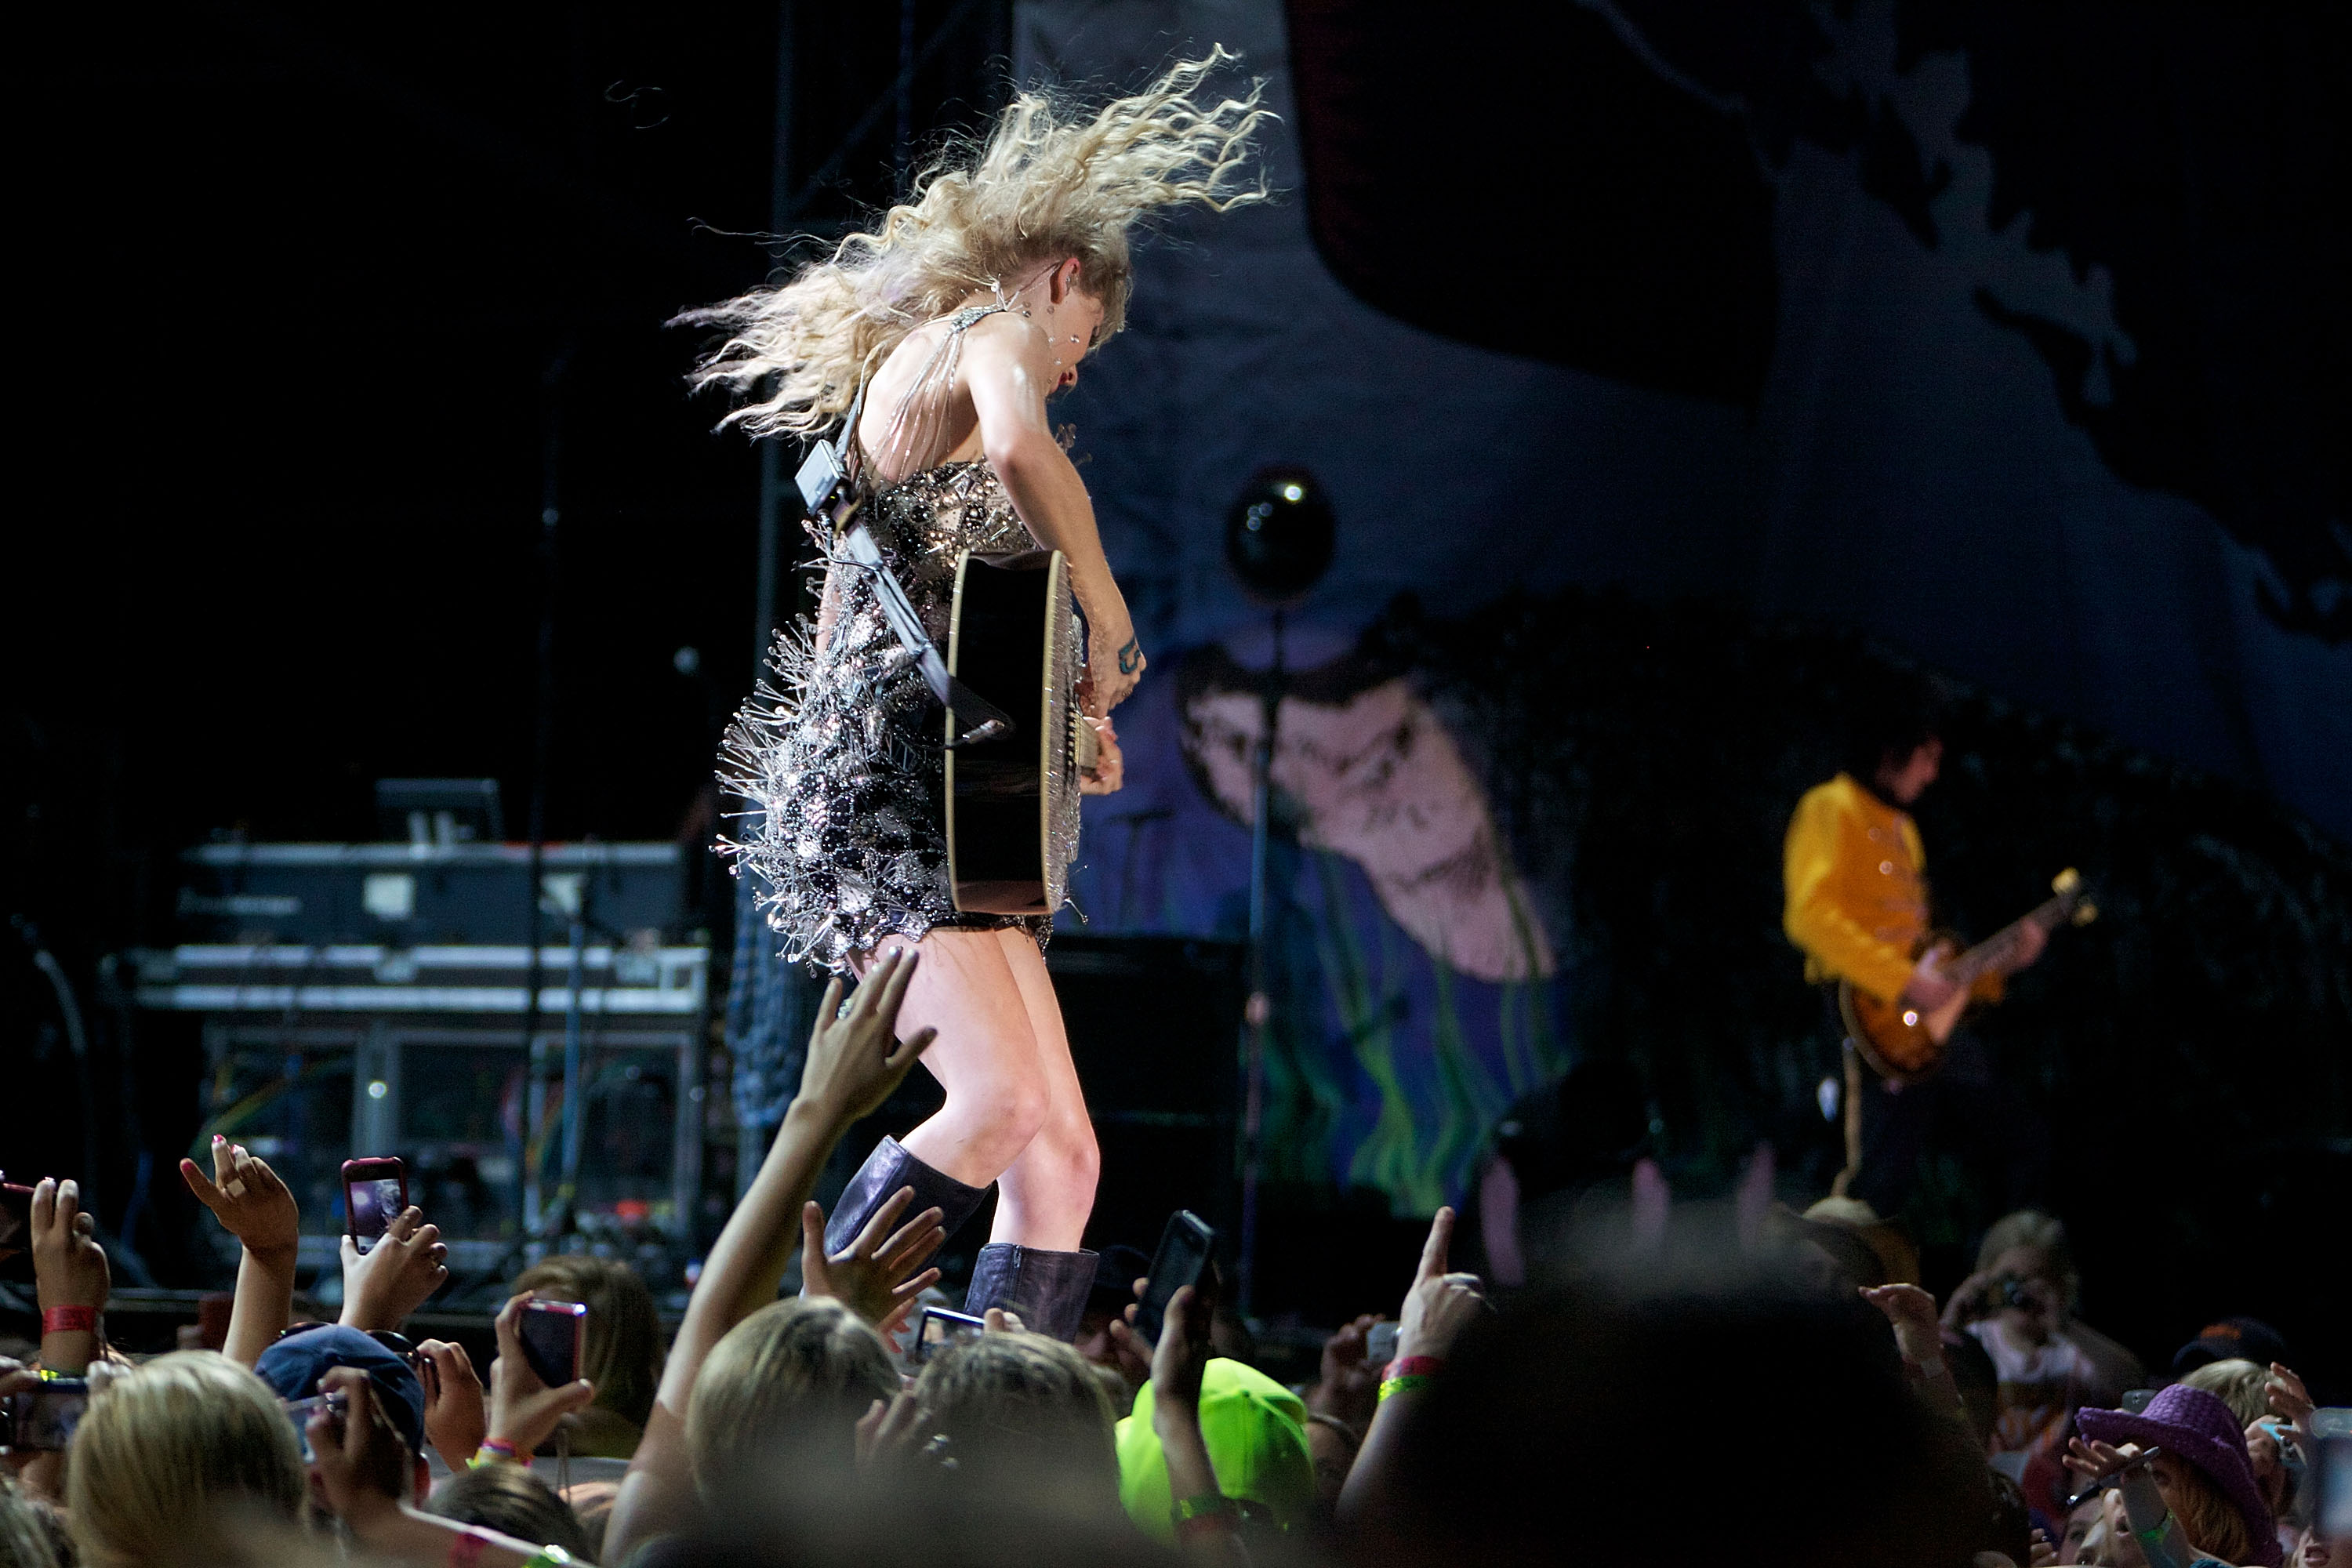 32715_Taylor_swift_performs_her_Fearless_Tour_at_Tiger_Stadium_045_122_484lo.jpg